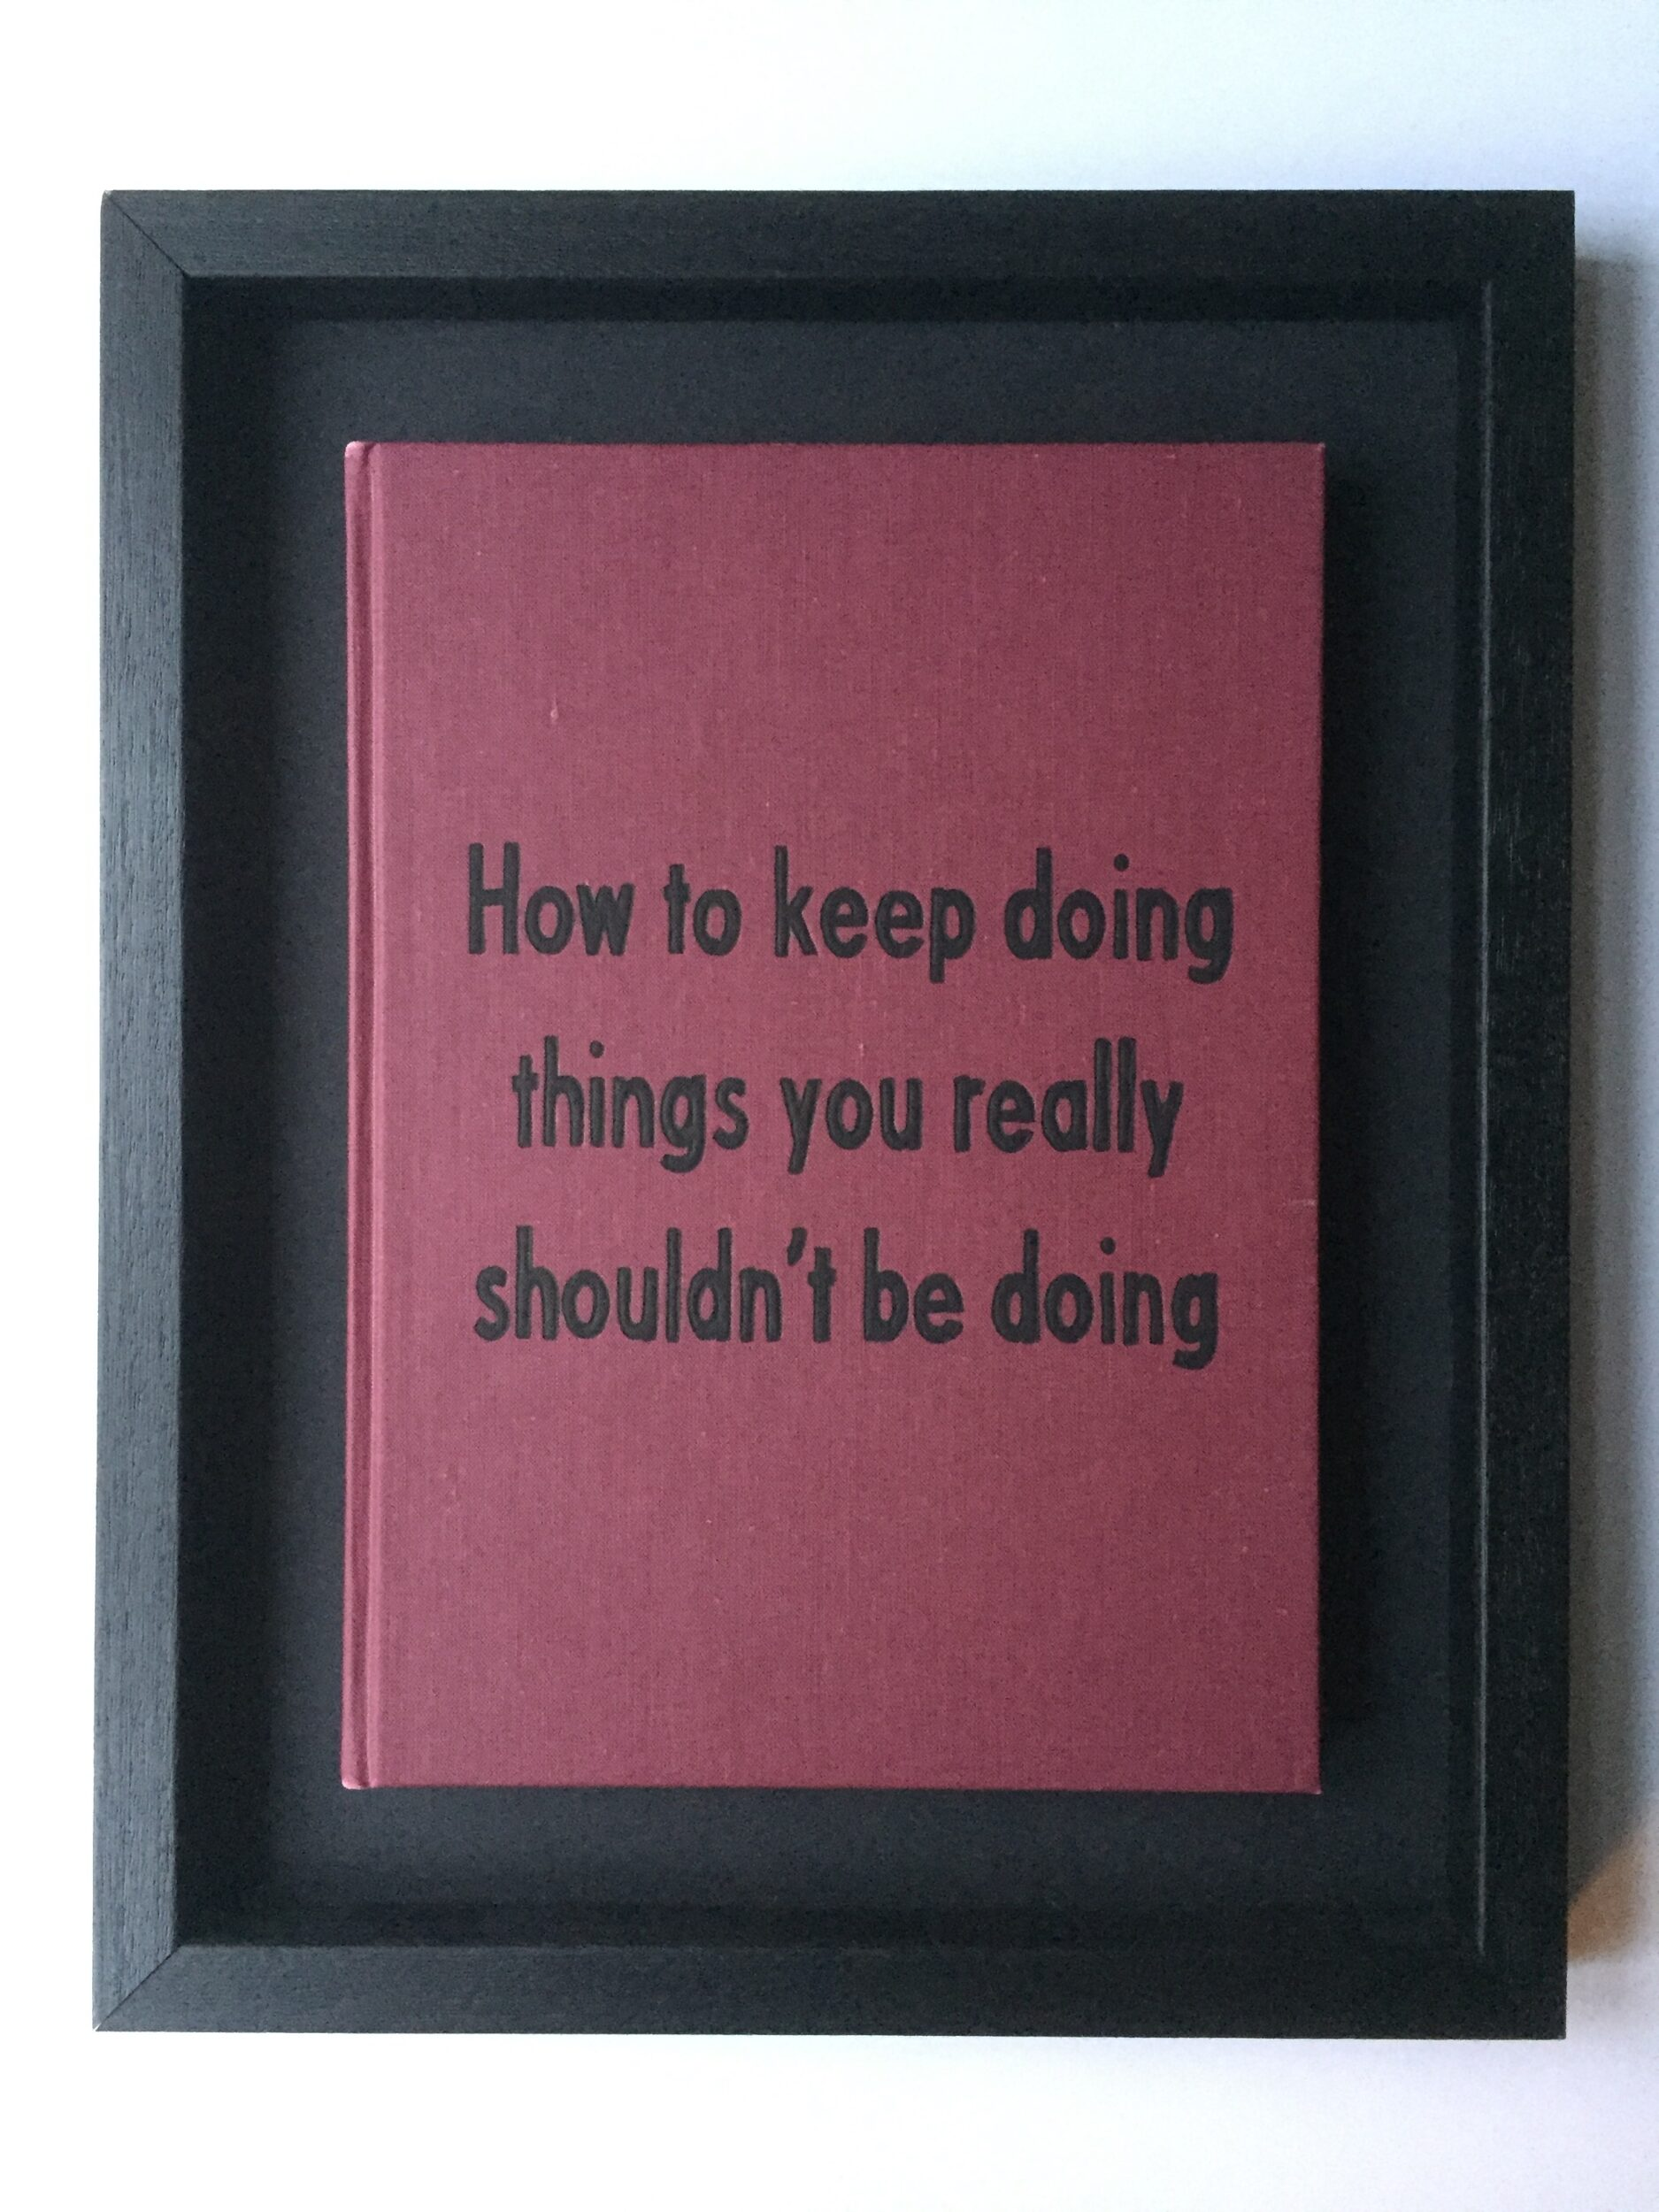 Things You Really Should't Be Doing